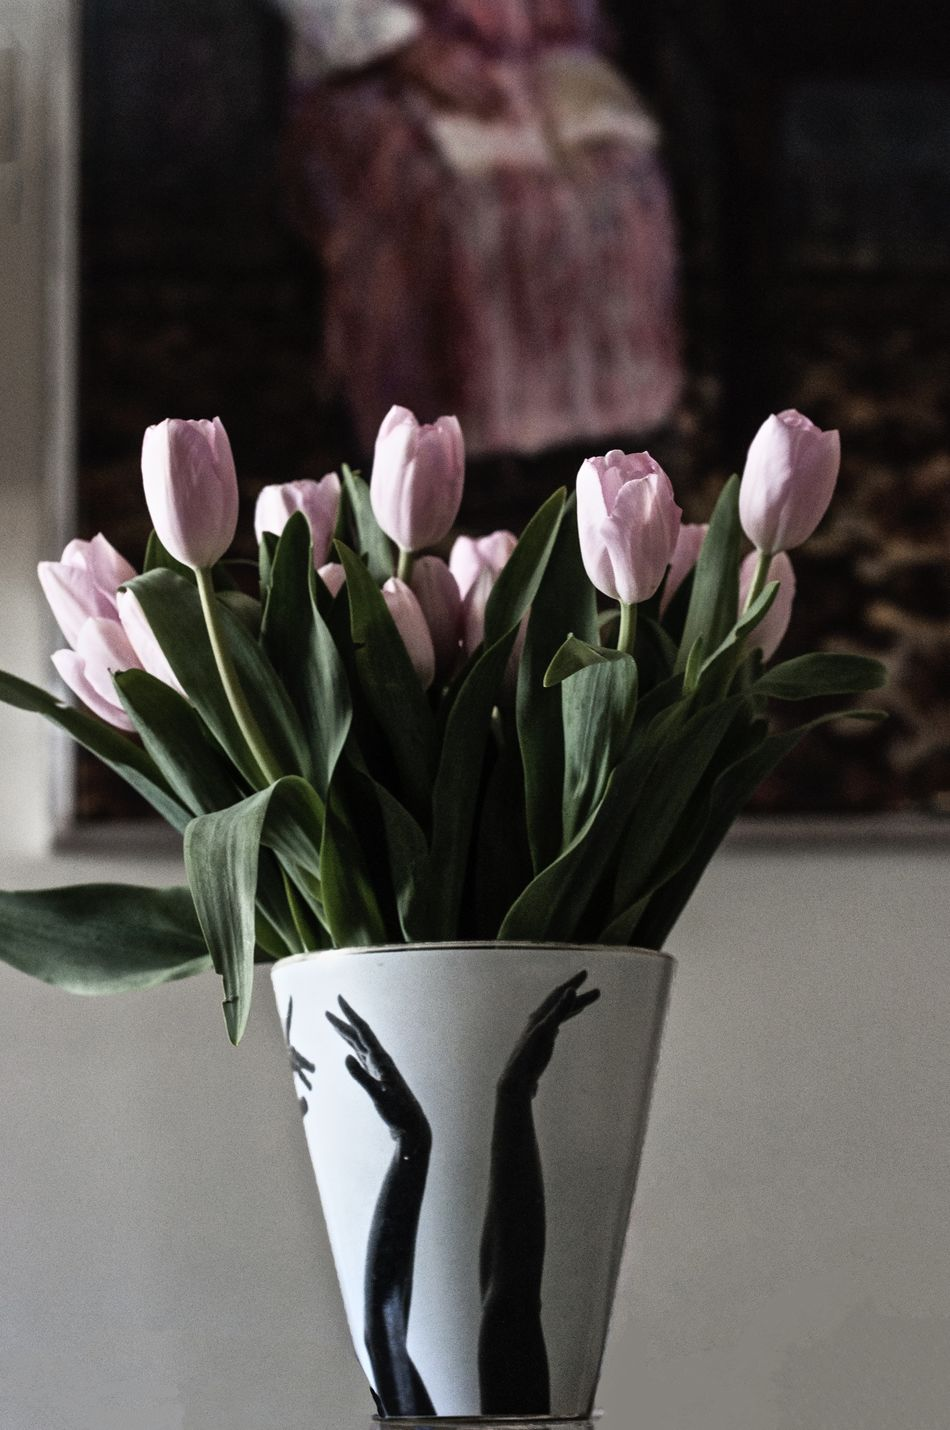 Beauty In Nature Blooming Close-up Flower Arrangement Flowers Fragility Freshness Just Taking Pictures Low Angle View Millennial Pink Pink Color Tulips Vase